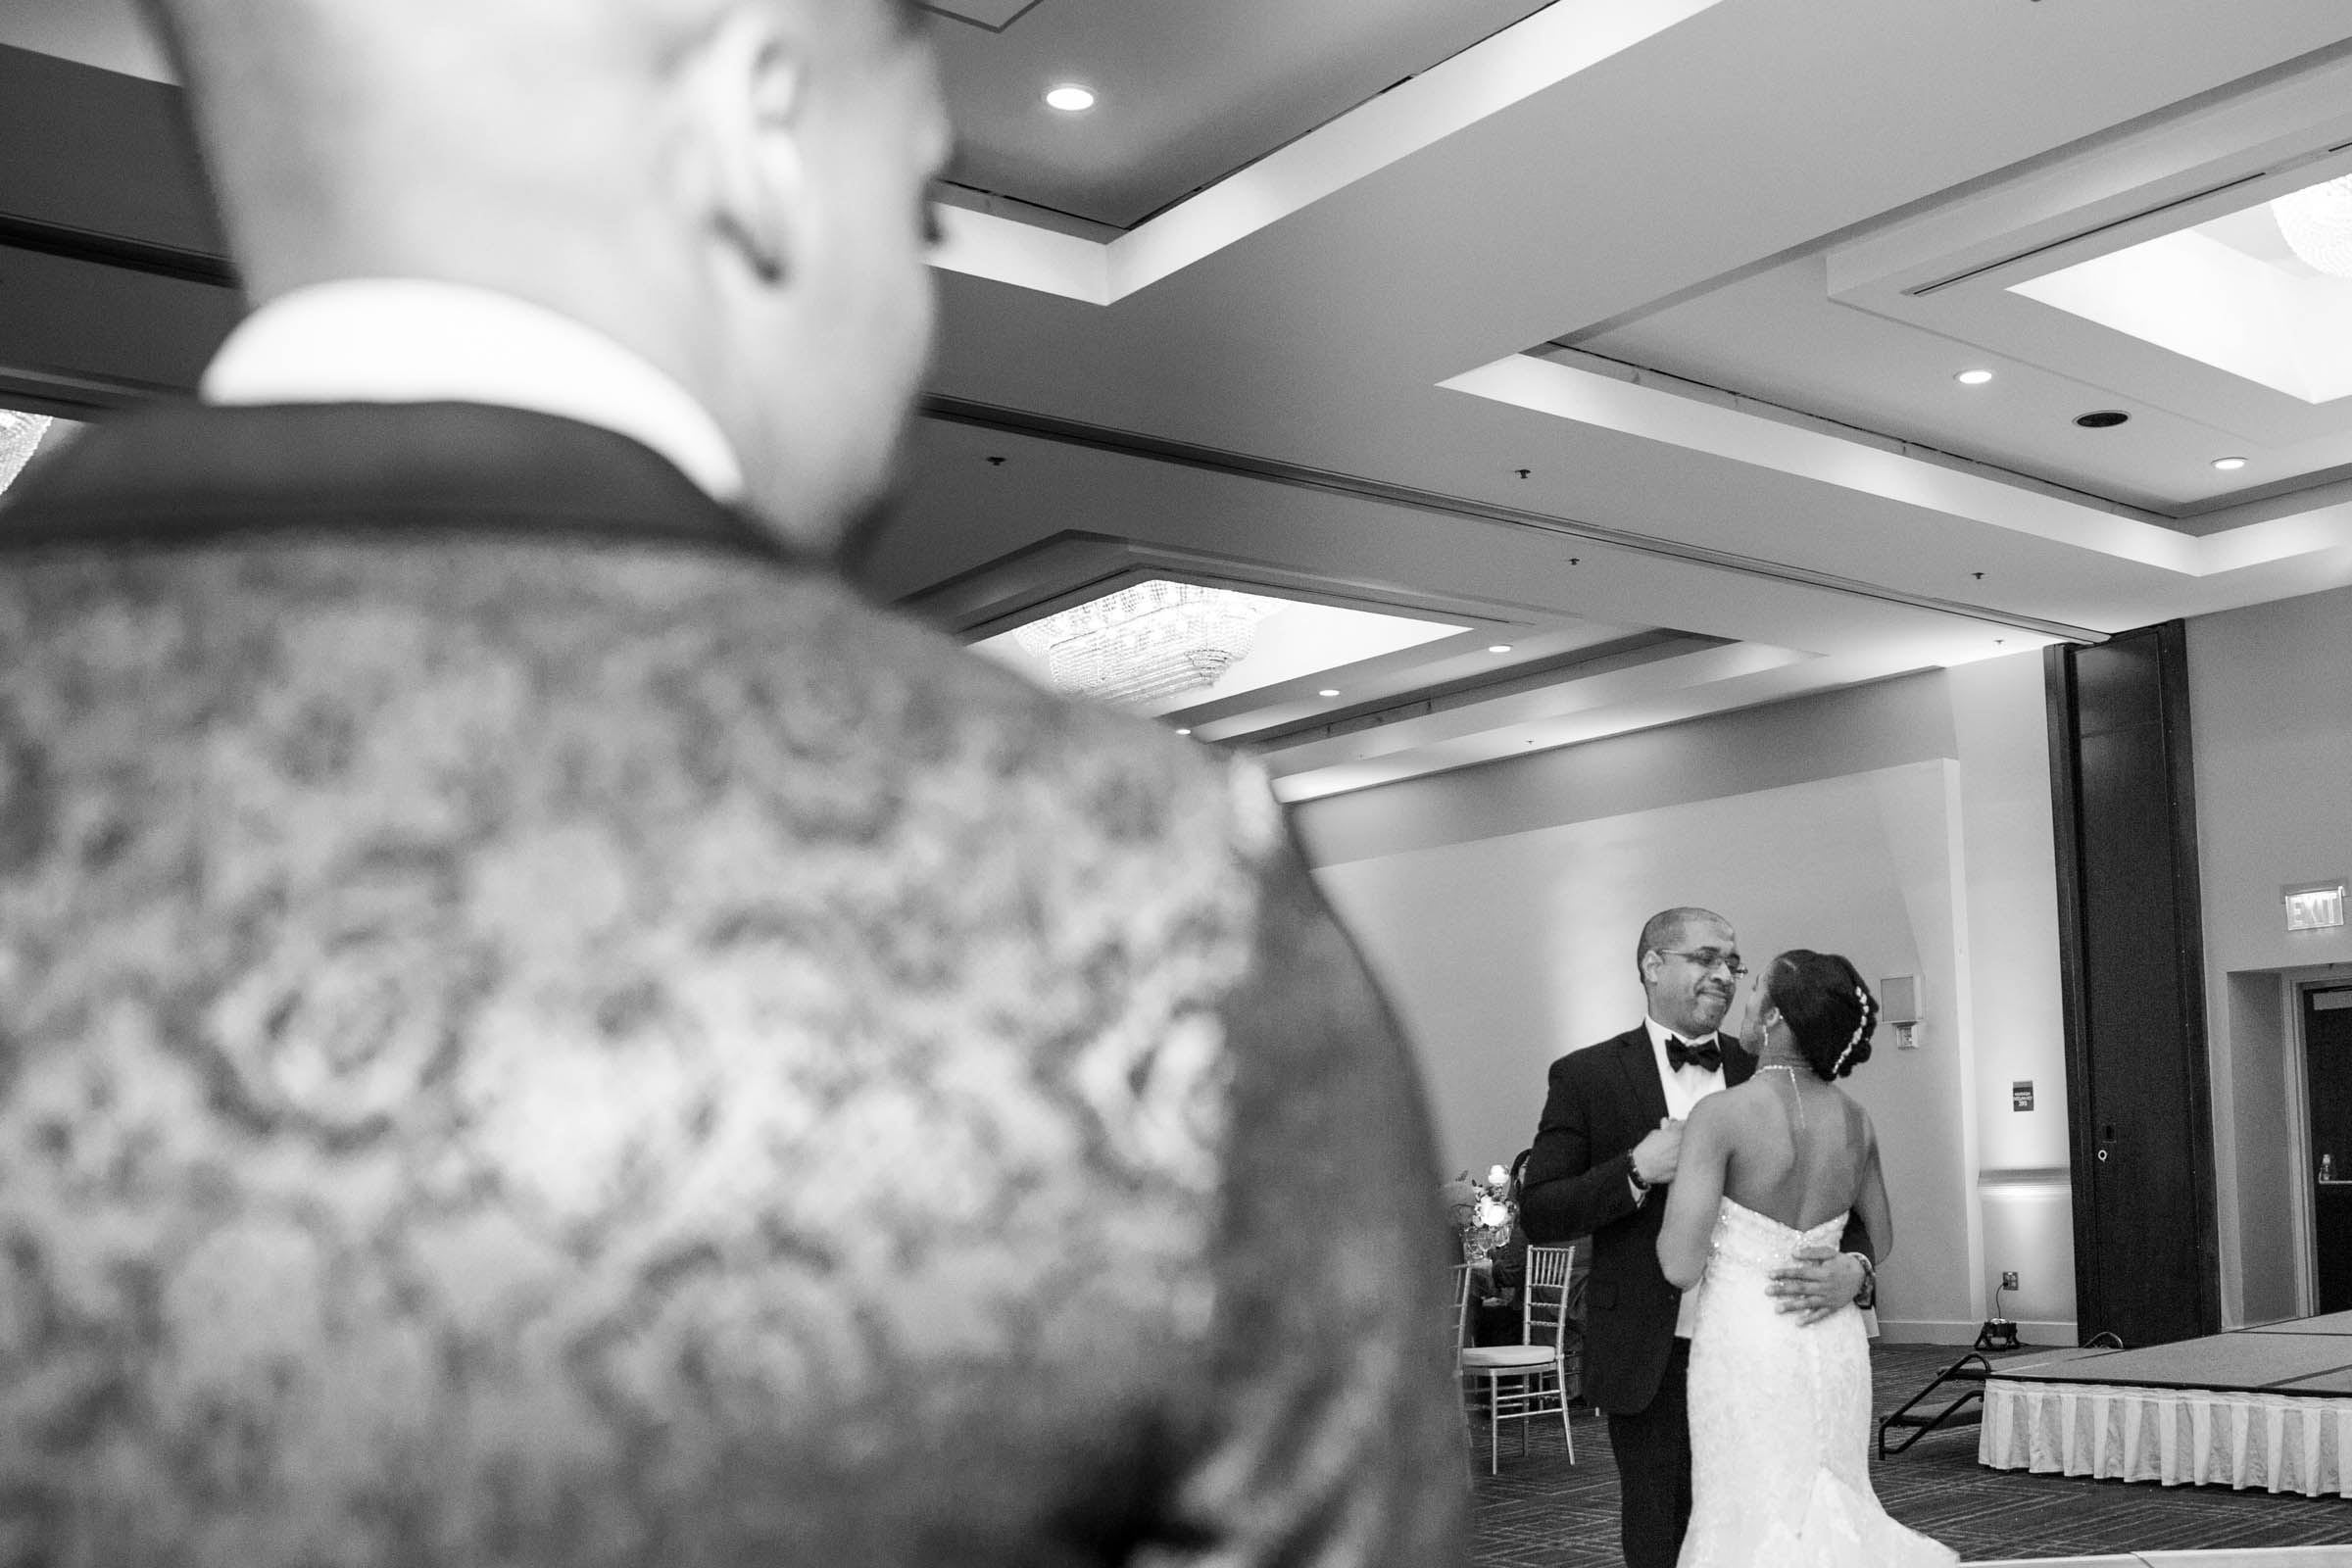 Black Bride Dream Wedding at  Hyatt Regency Fairfax Virginia Husband and Wife Wedding Photographers Megapixels Media Photography (81 of 104).jpg